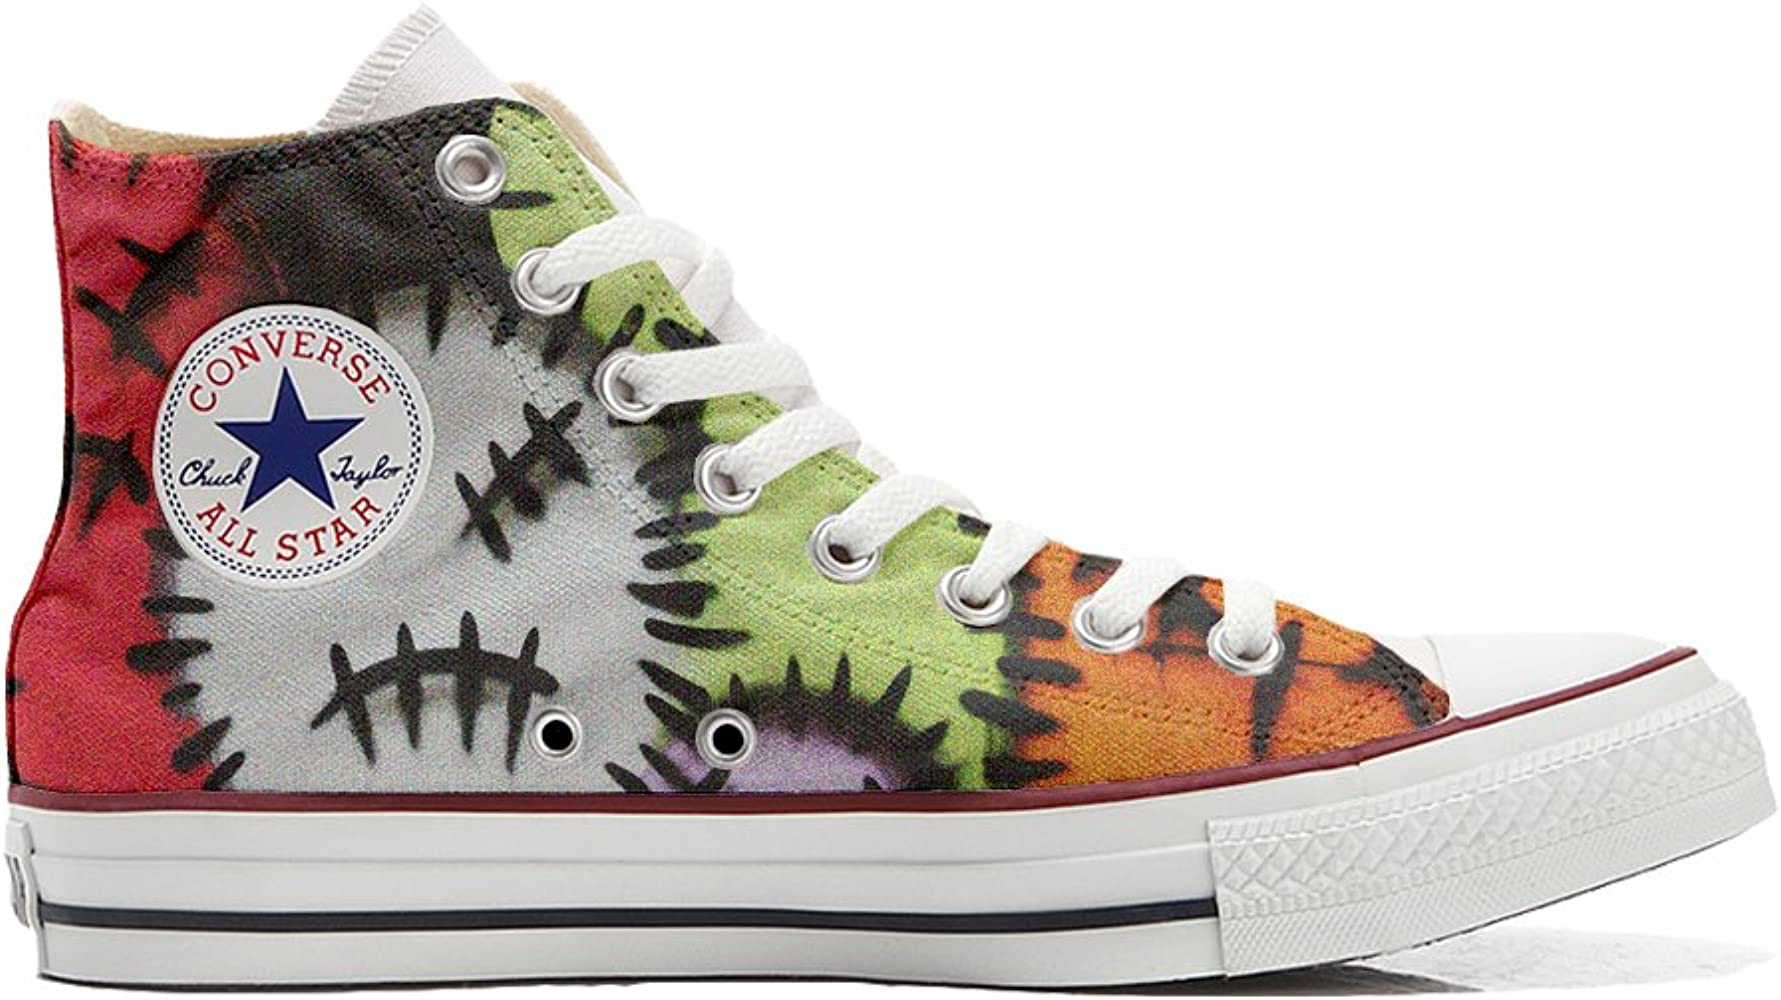 Converse All Star Cutomized personalisierte Schuhe